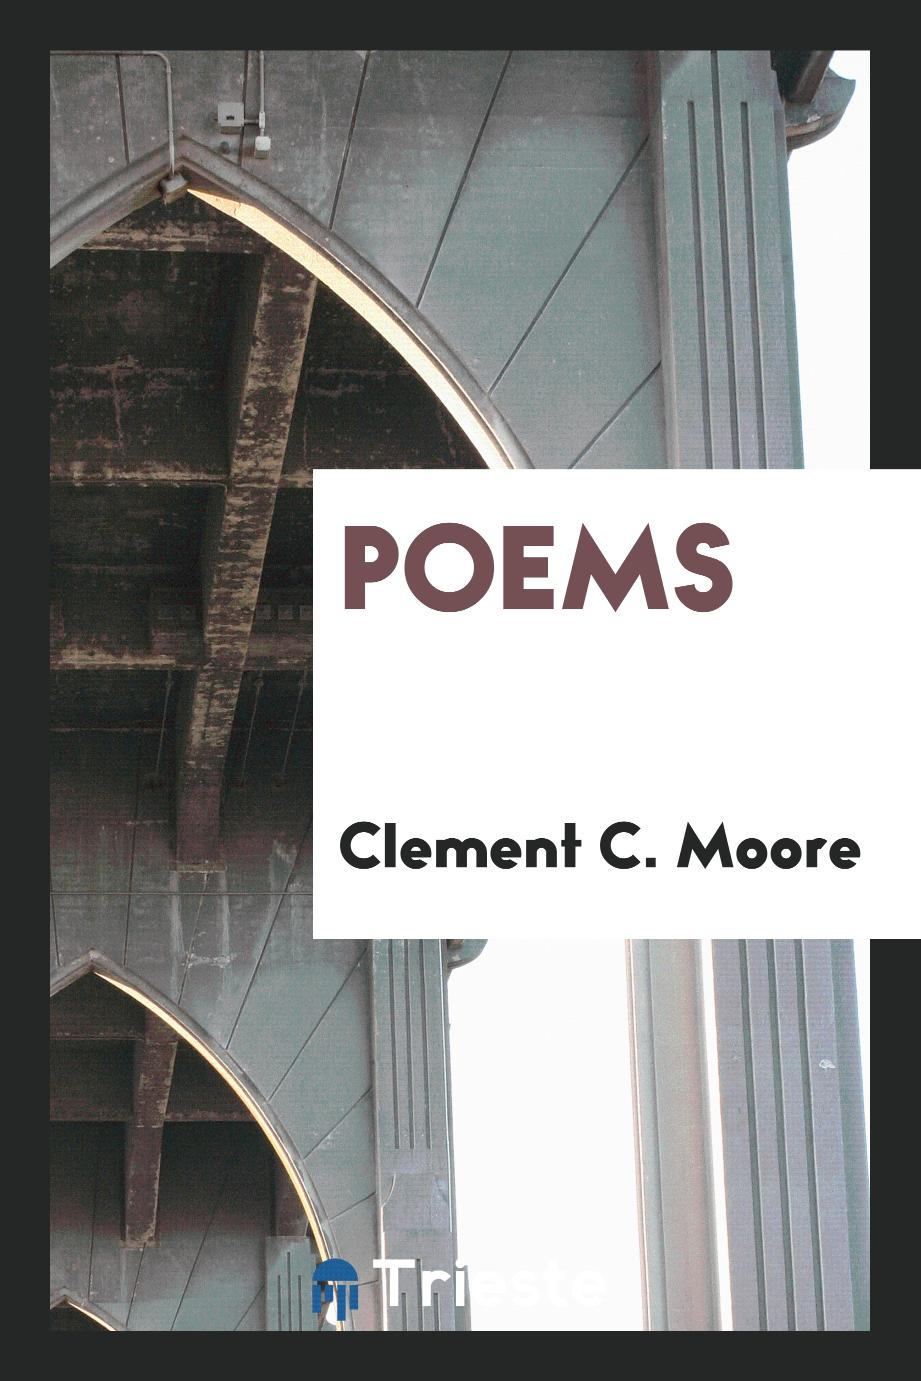 Clement C. Moore - Poems